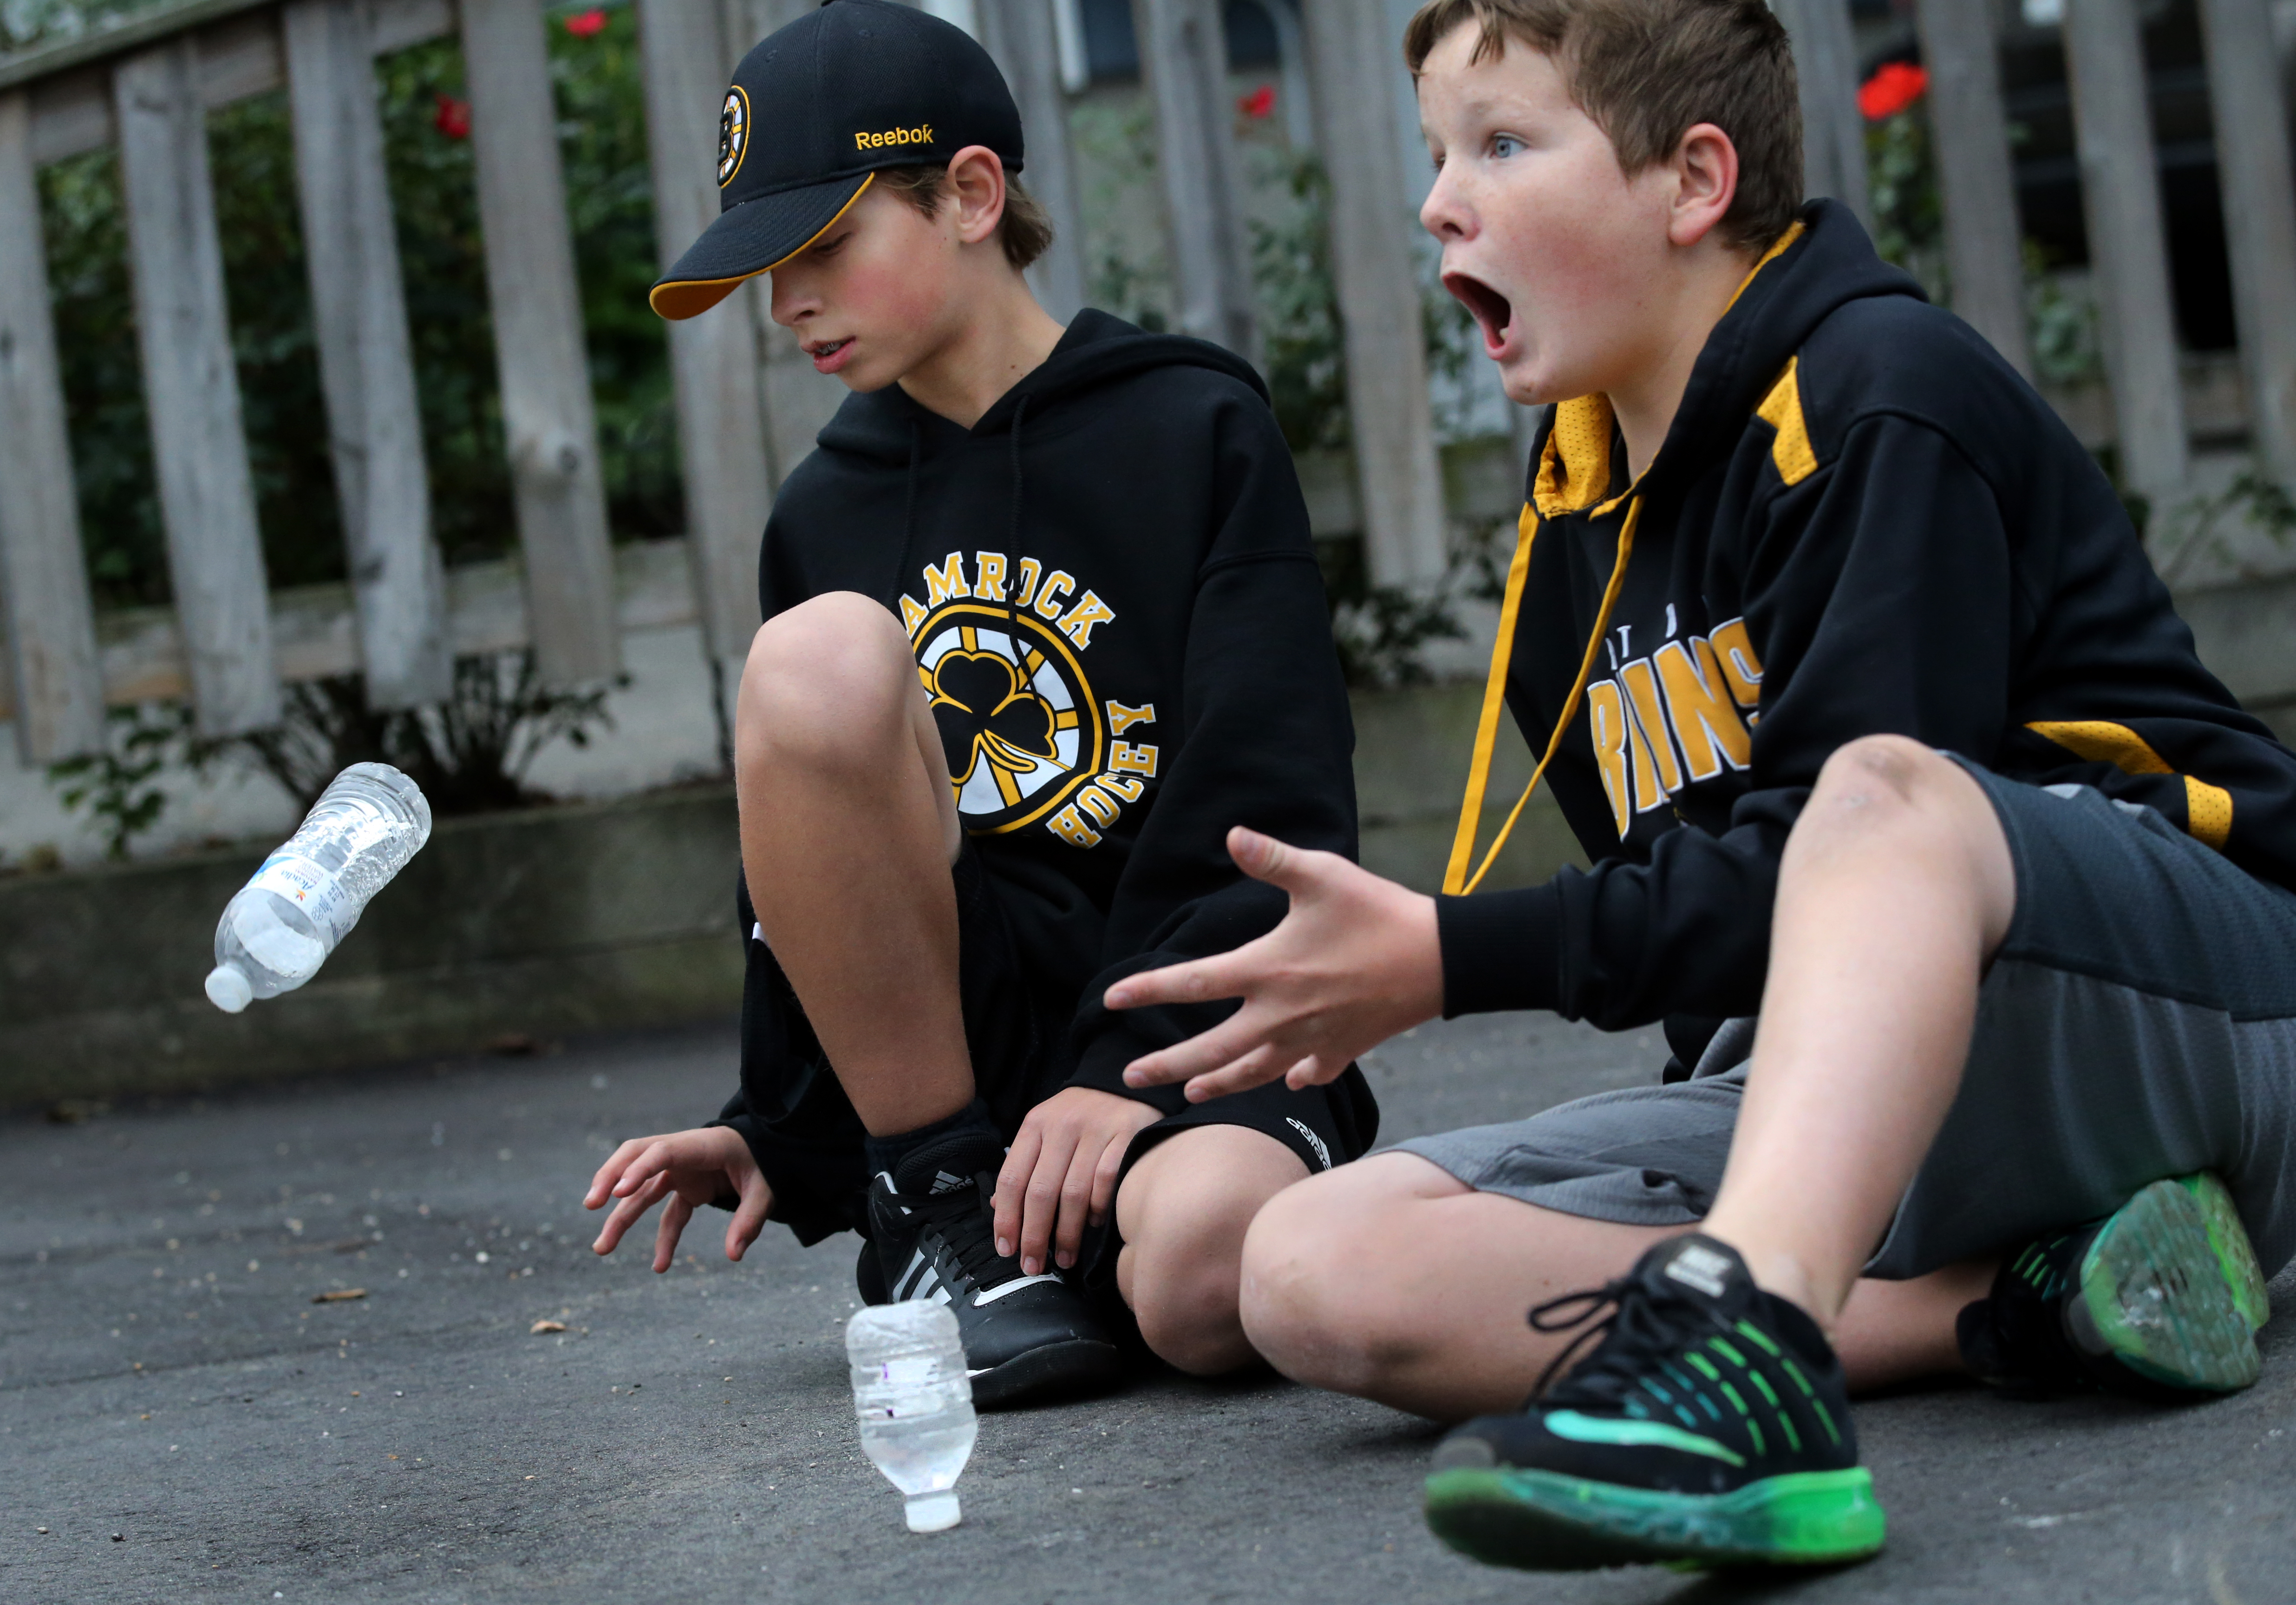 a705a4d174 Bottle flipping becomes the rage with middle schoolers - The Boston Globe